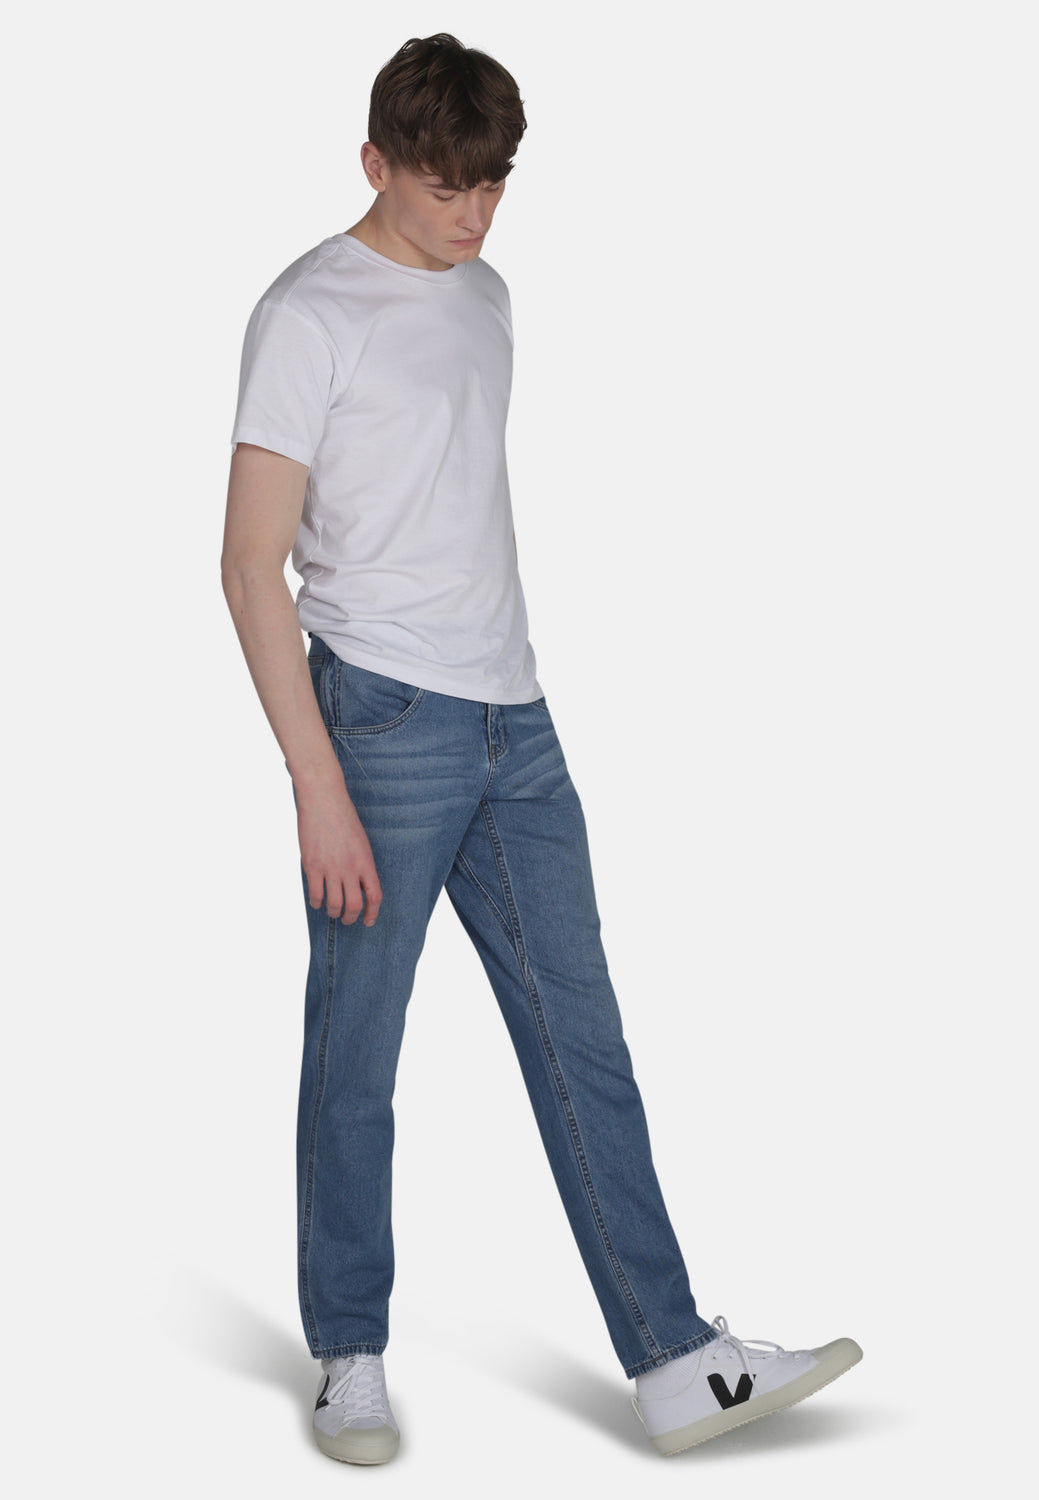 WORKER // Organic Relaxed Straight Leg Jean in Light Wash - Monkee Genes Organic Jeans Denim - Men's Wide Jeans Monkee Genes Official  Monkee Genes Official